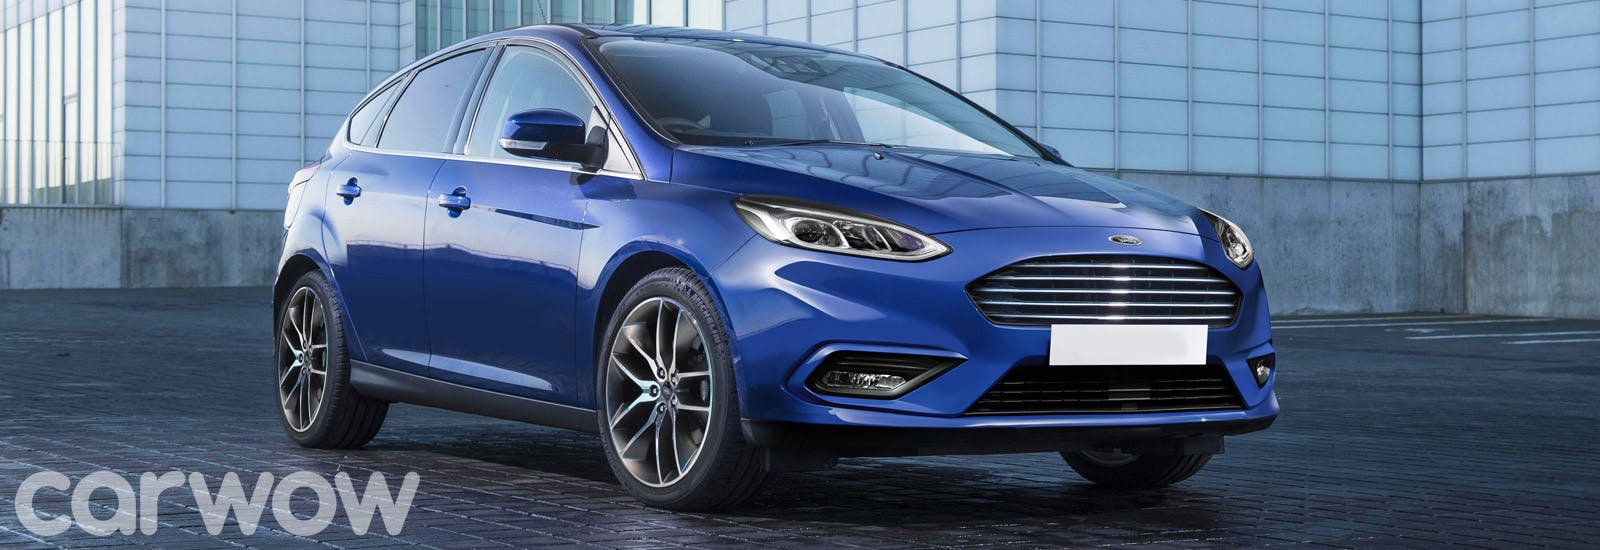 2018 Ford Focus price specs and release date  carwow